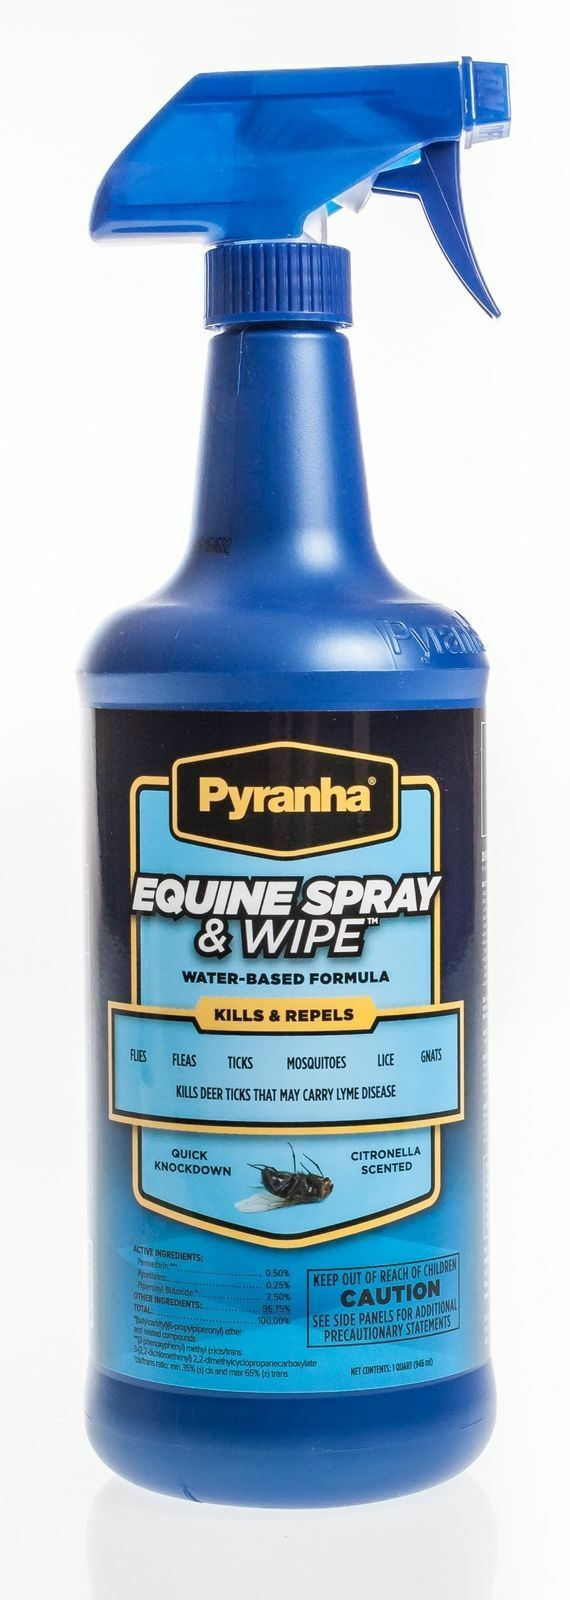 3x Pyranha Sp   And Wipe Water Based Formula - 32oz  save 35% - 70% off